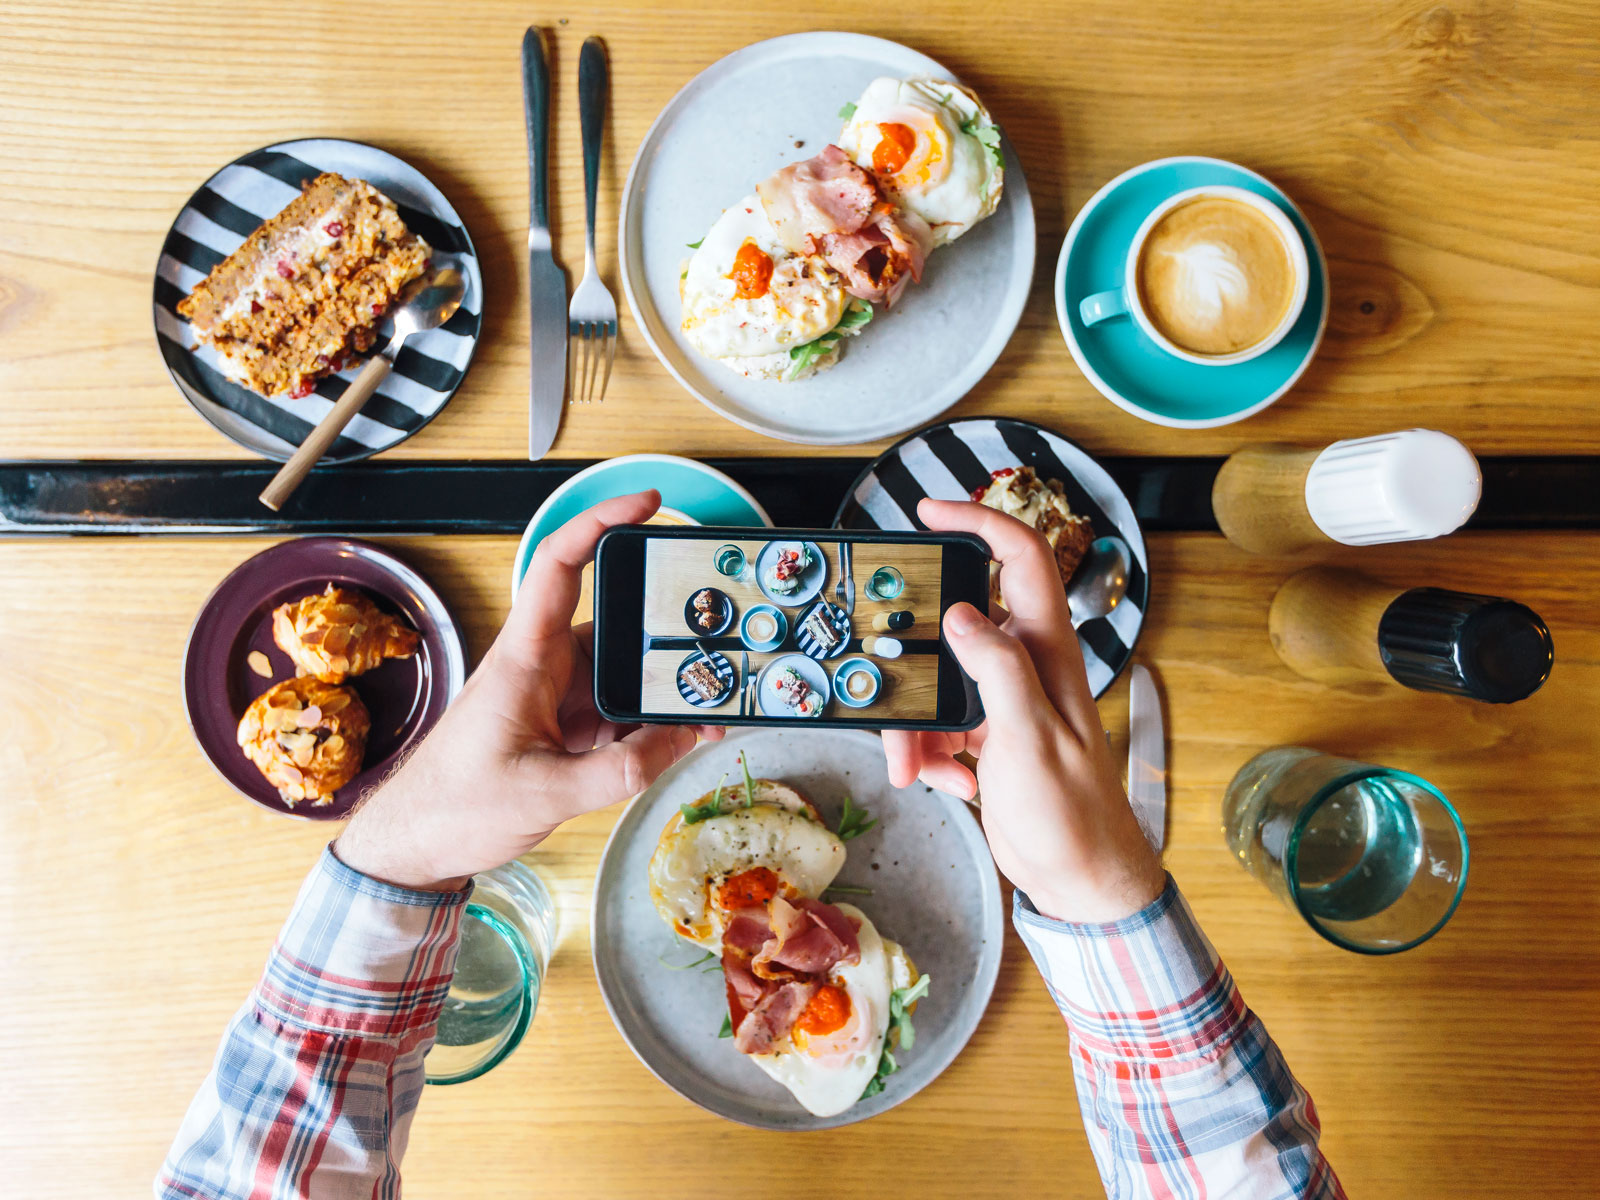 8 Questions You've Always Wanted to Ask Food Instagram Influencers—Answered